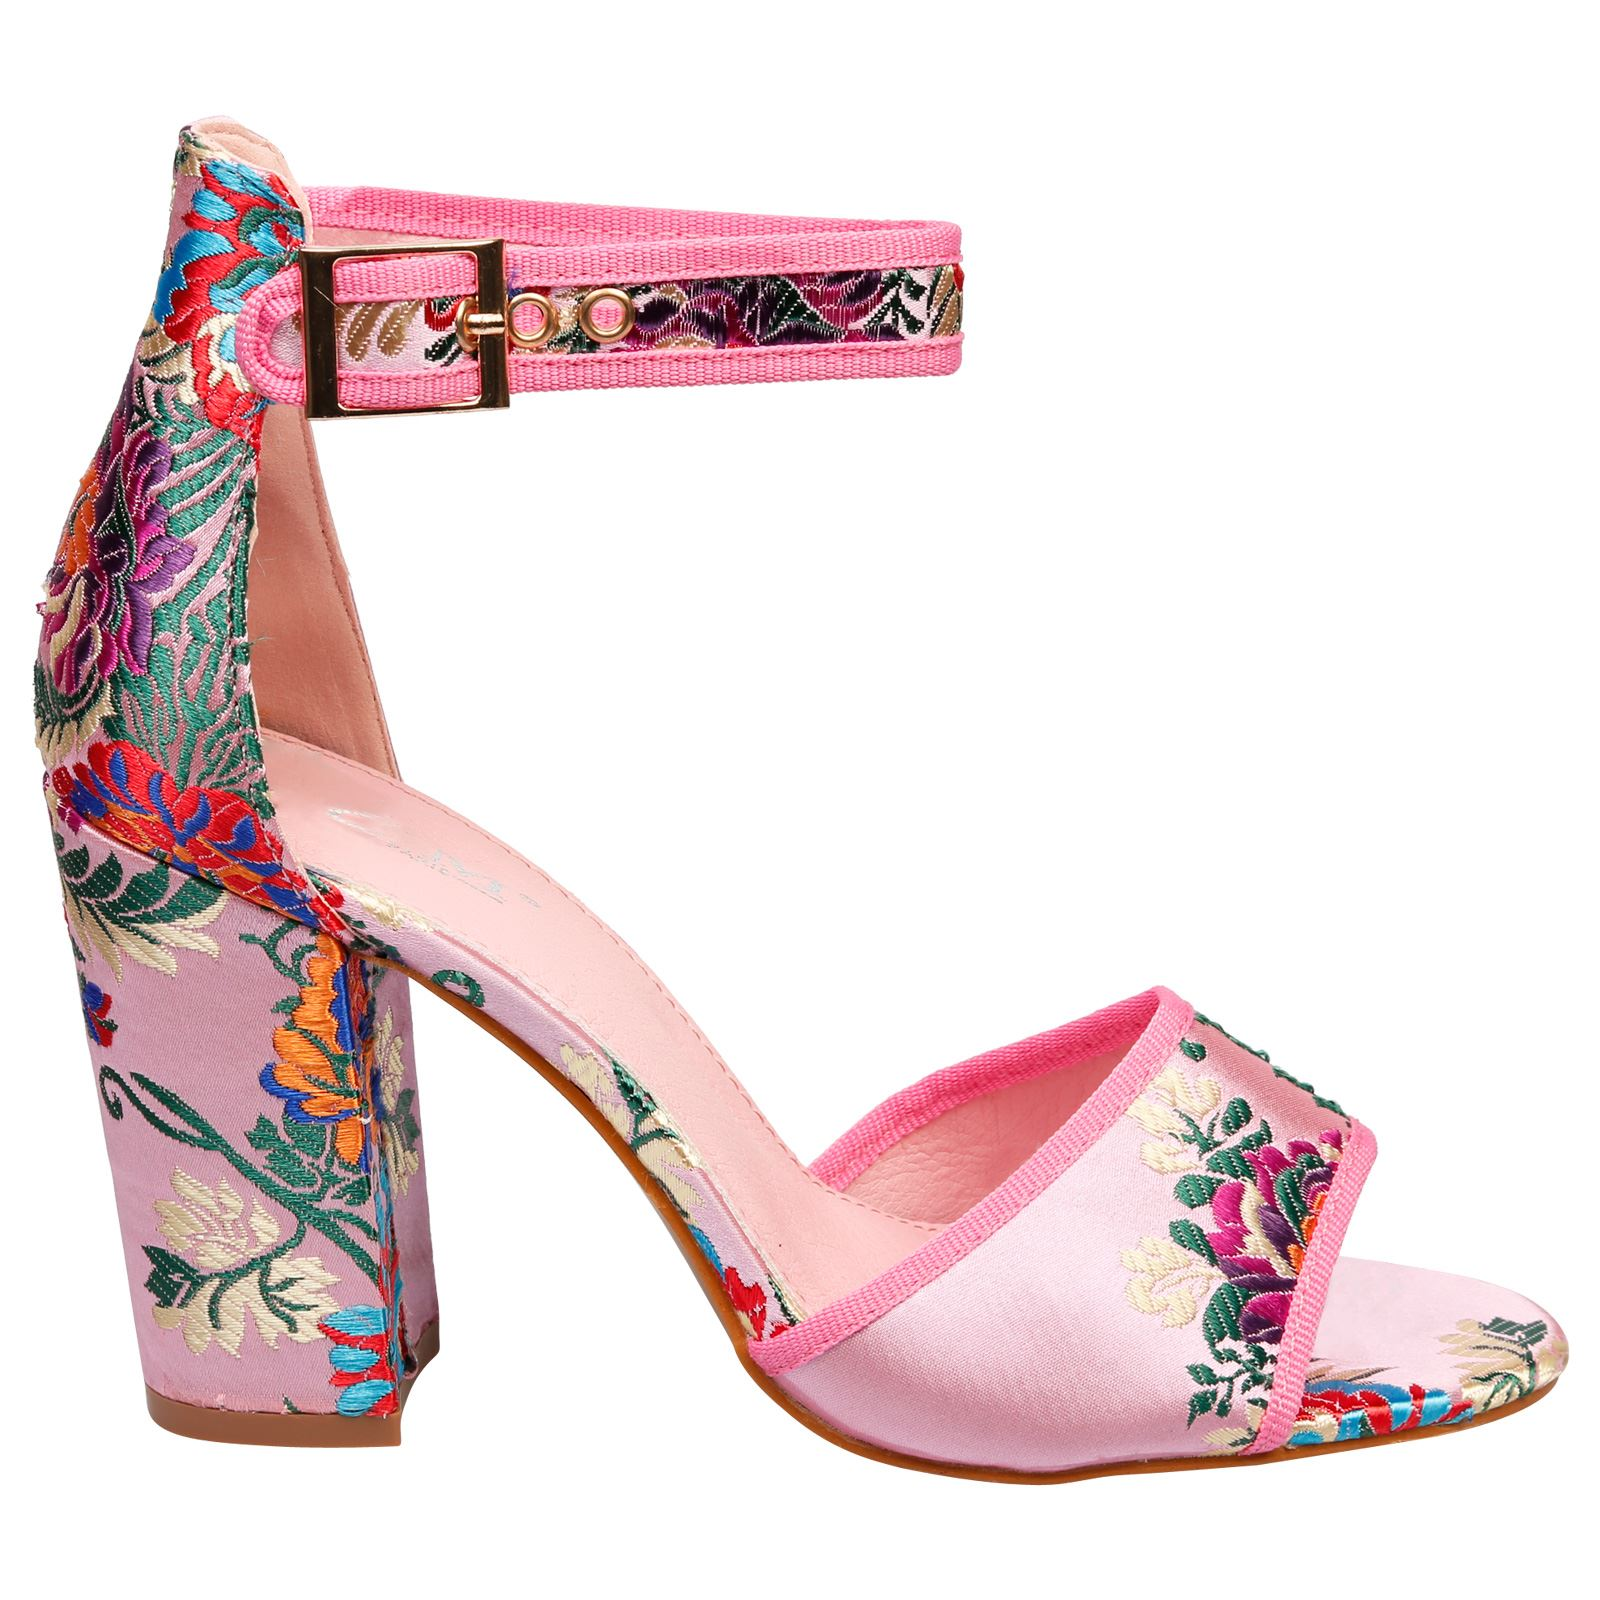 Kimber-Womens-Mid-High-Block-Heels-Peep-Toe-Floral-Sandals-Ladies-Shoes-Size-New